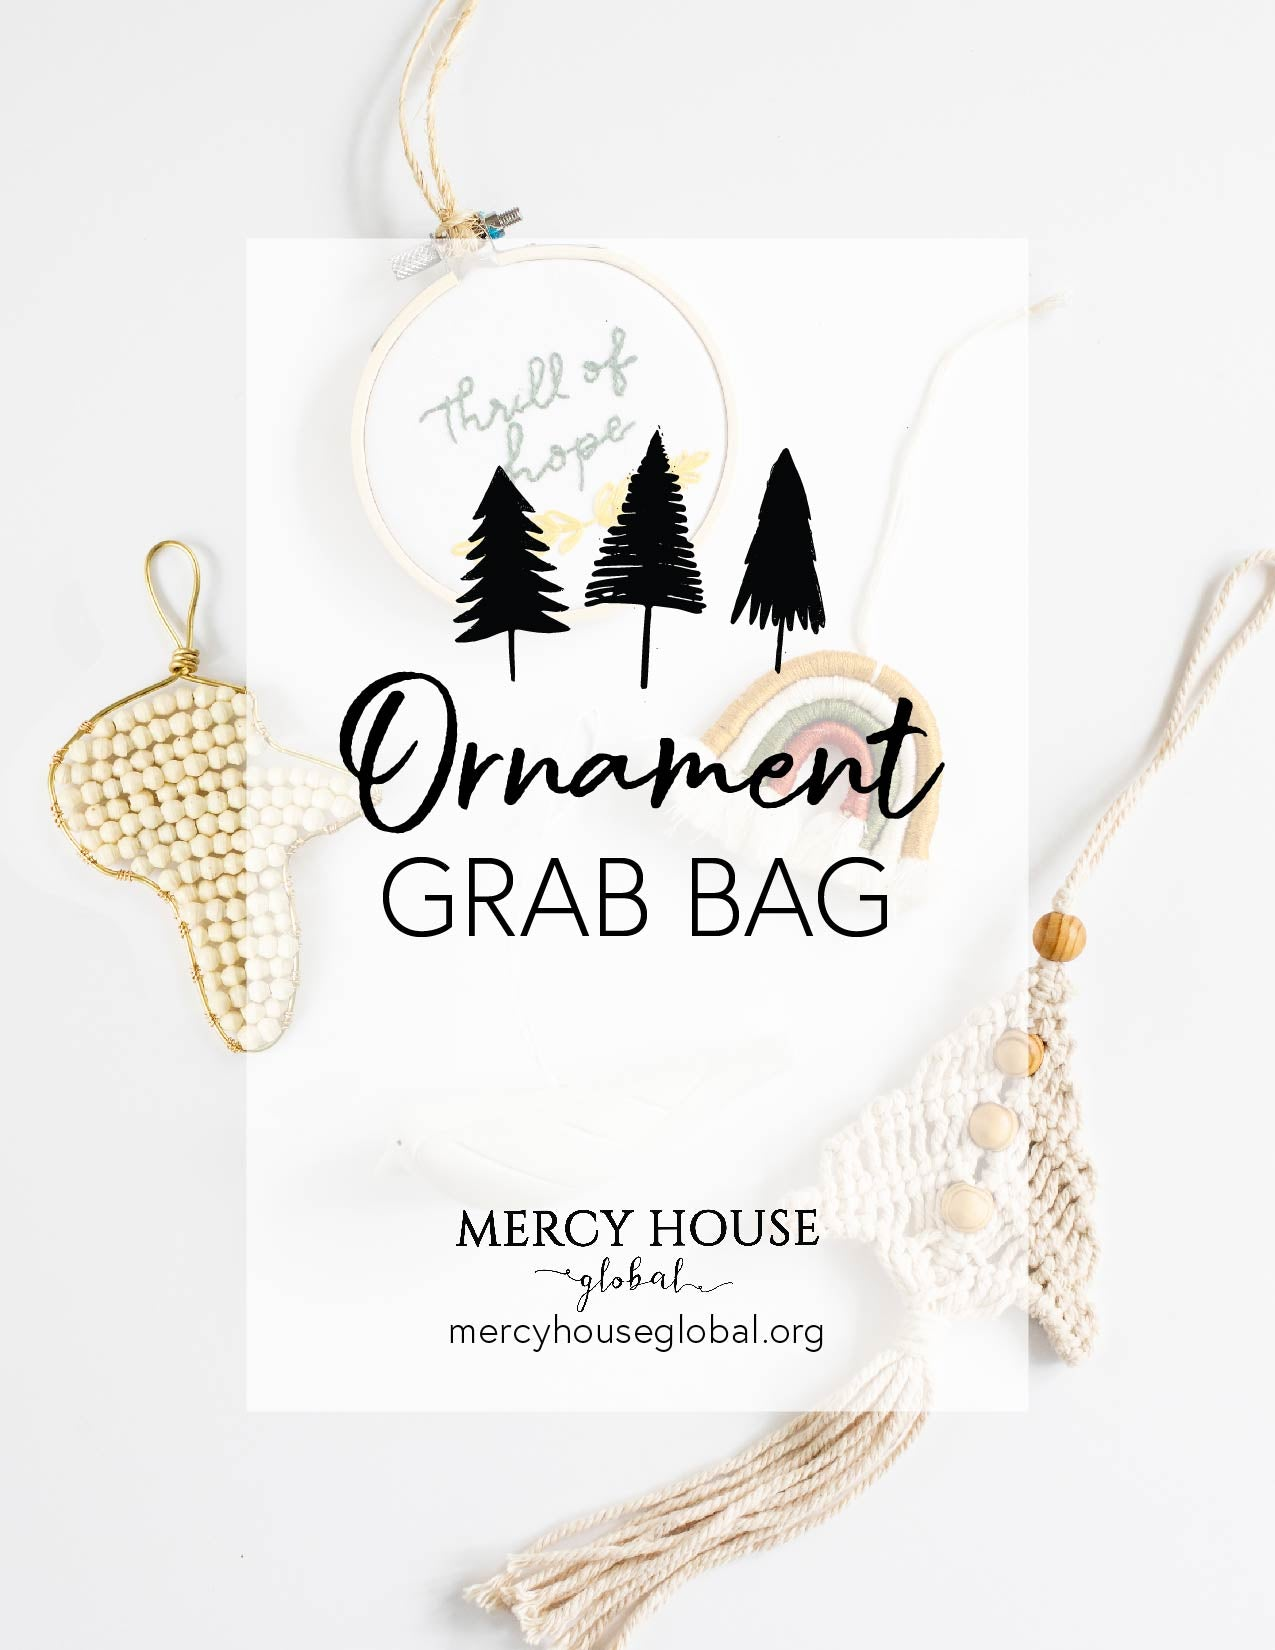 Ornament Grab Bags | 3 of your favorite Fair Trade Christmas Ornaments Grab Bag - Fair Trade - Mercy House Global